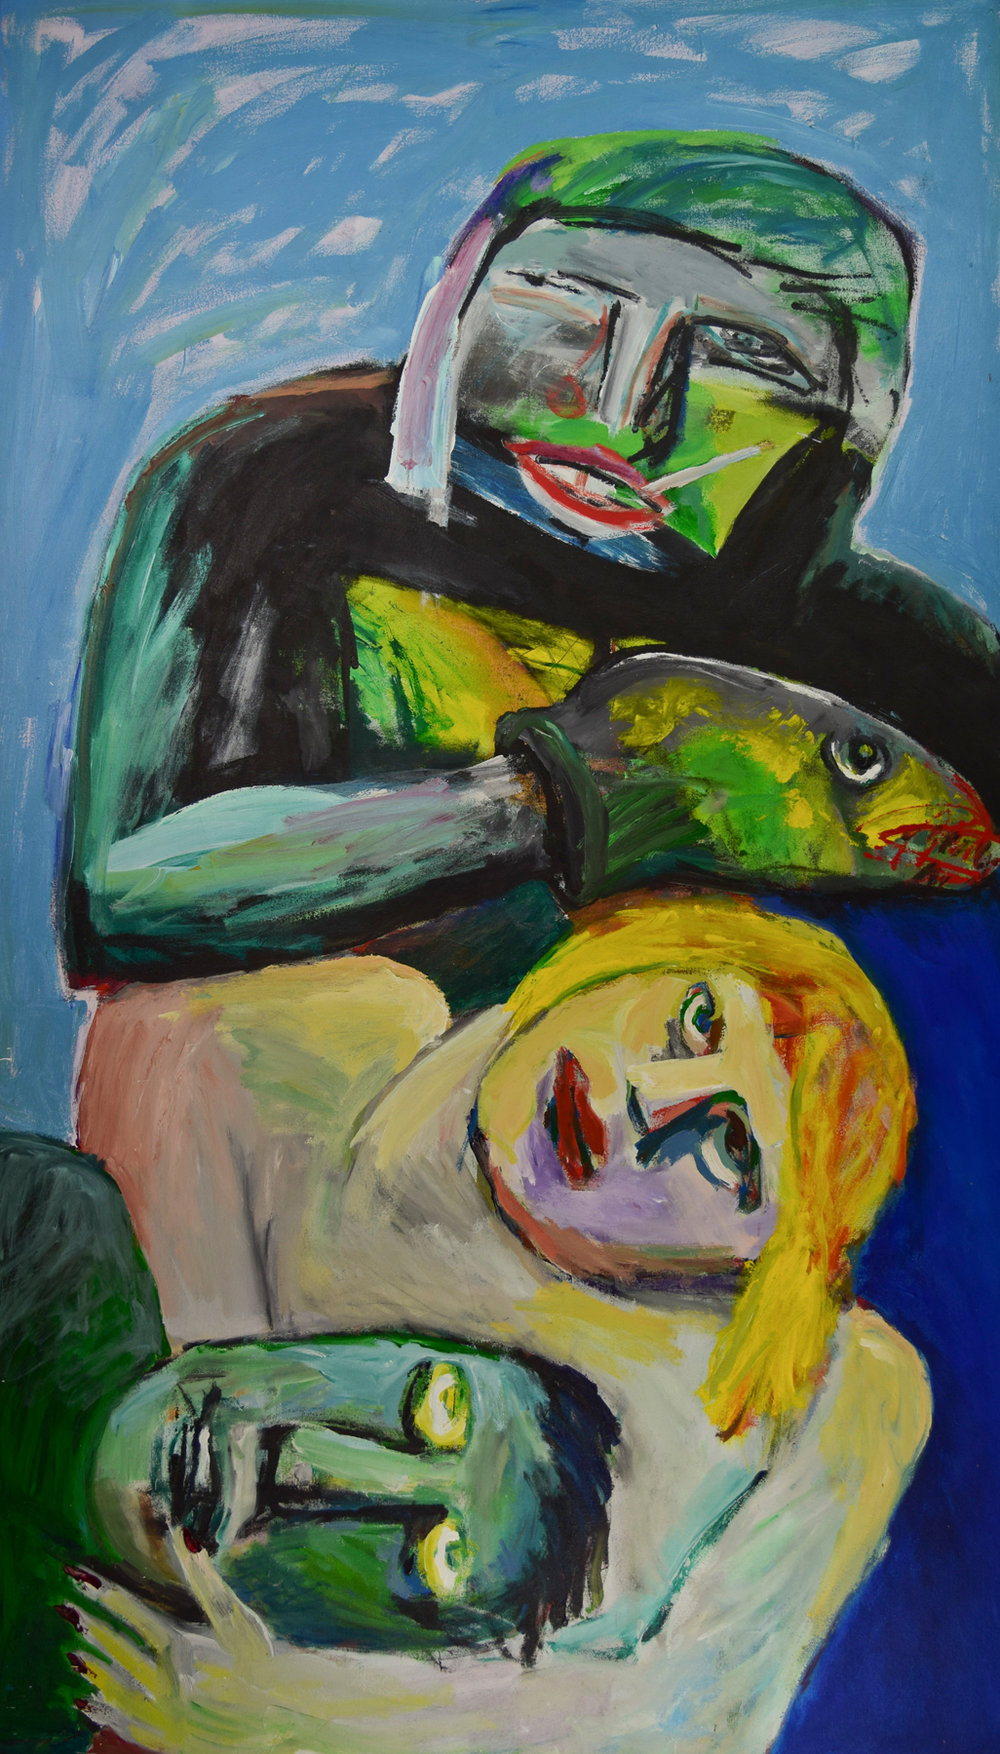 Untitled,  1993, Acrylic on canvas,  84 x 48 In. (213 x 121 cm.)